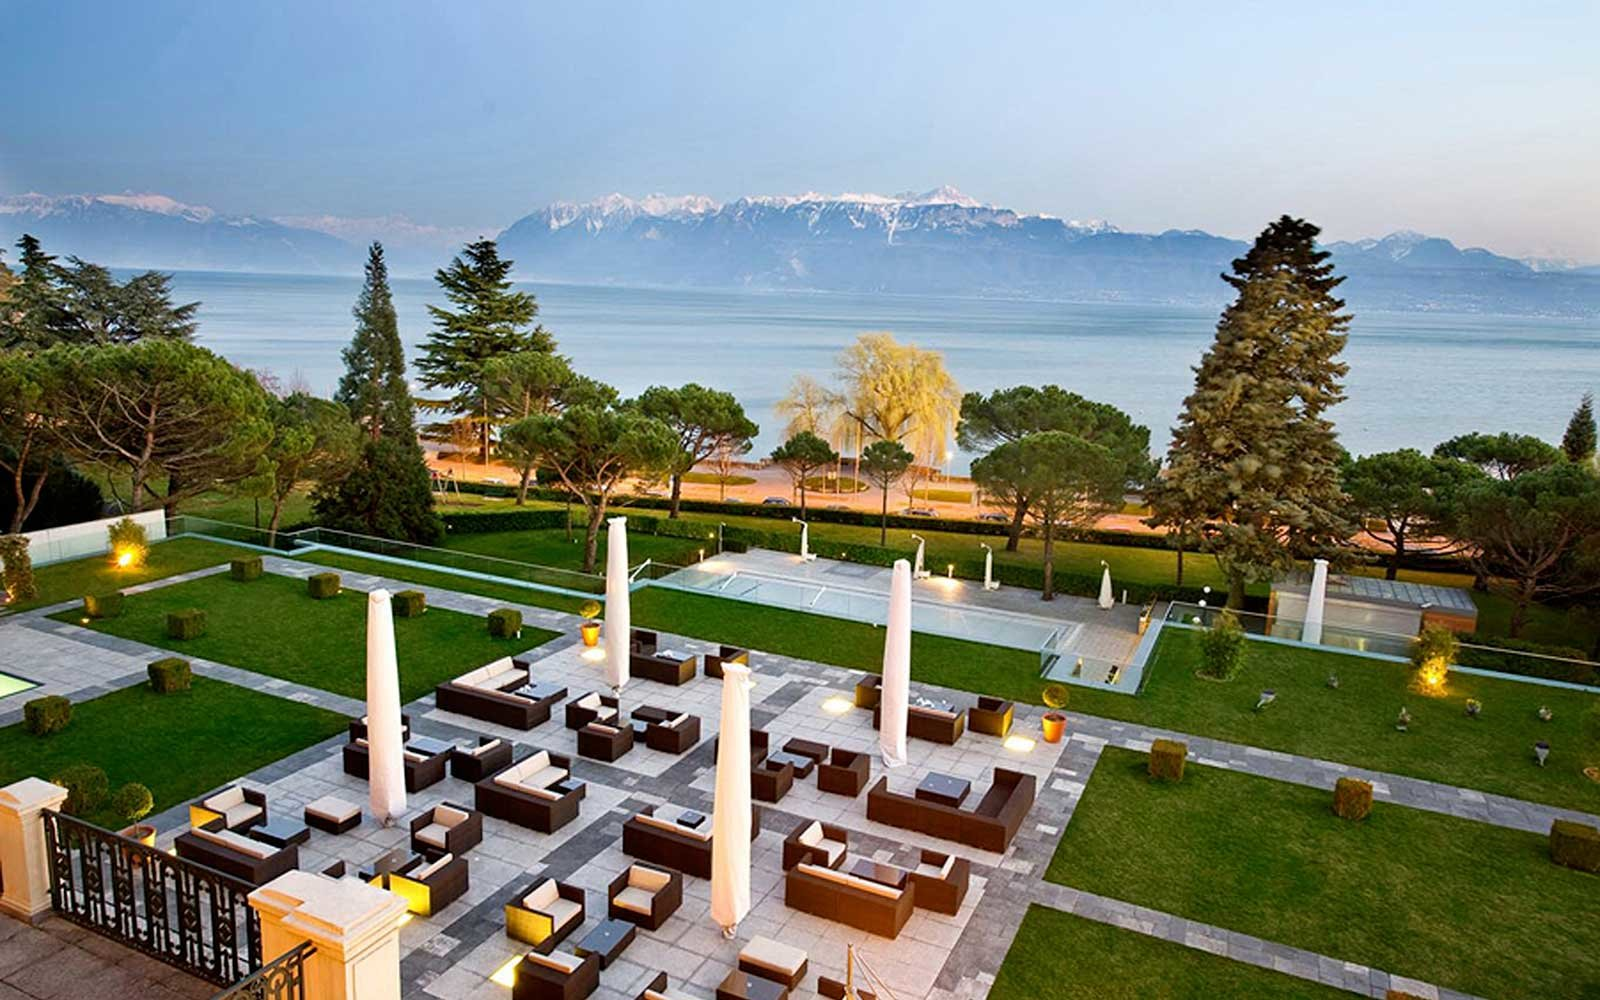 Beau-Rivage Palace Resort Hotel in Europe